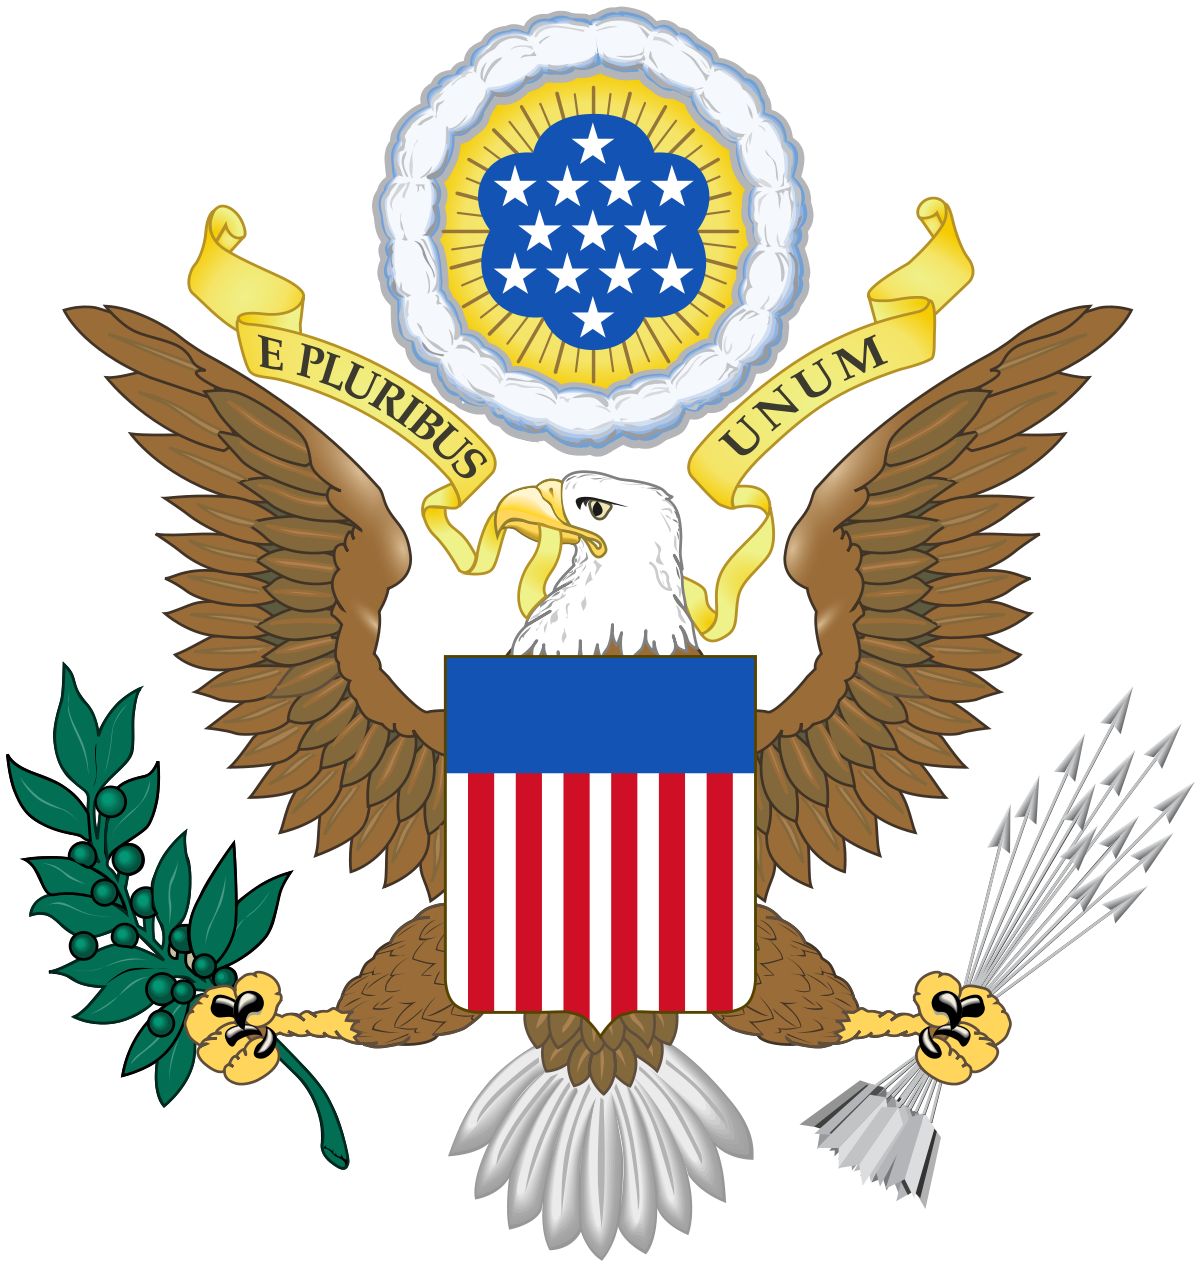 USA clipart citizenship Constitution First Wikipedia the Amendment